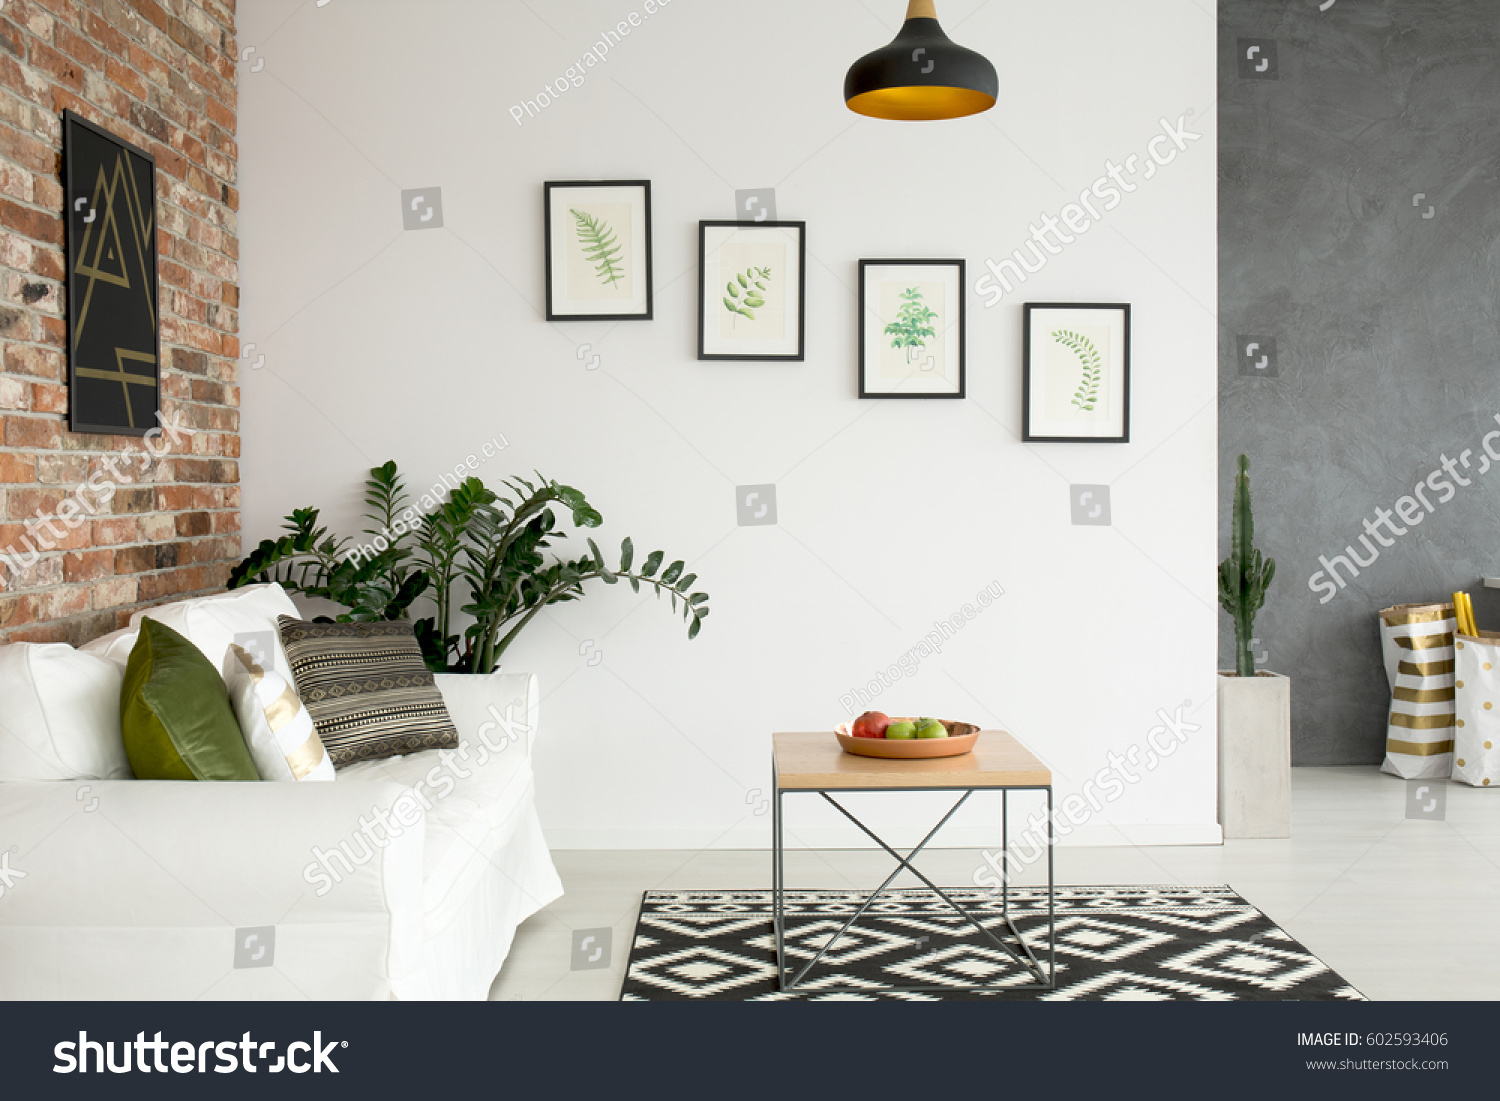 Bright Living Room With Sofa, Wall Poster And Wood Table Part 88